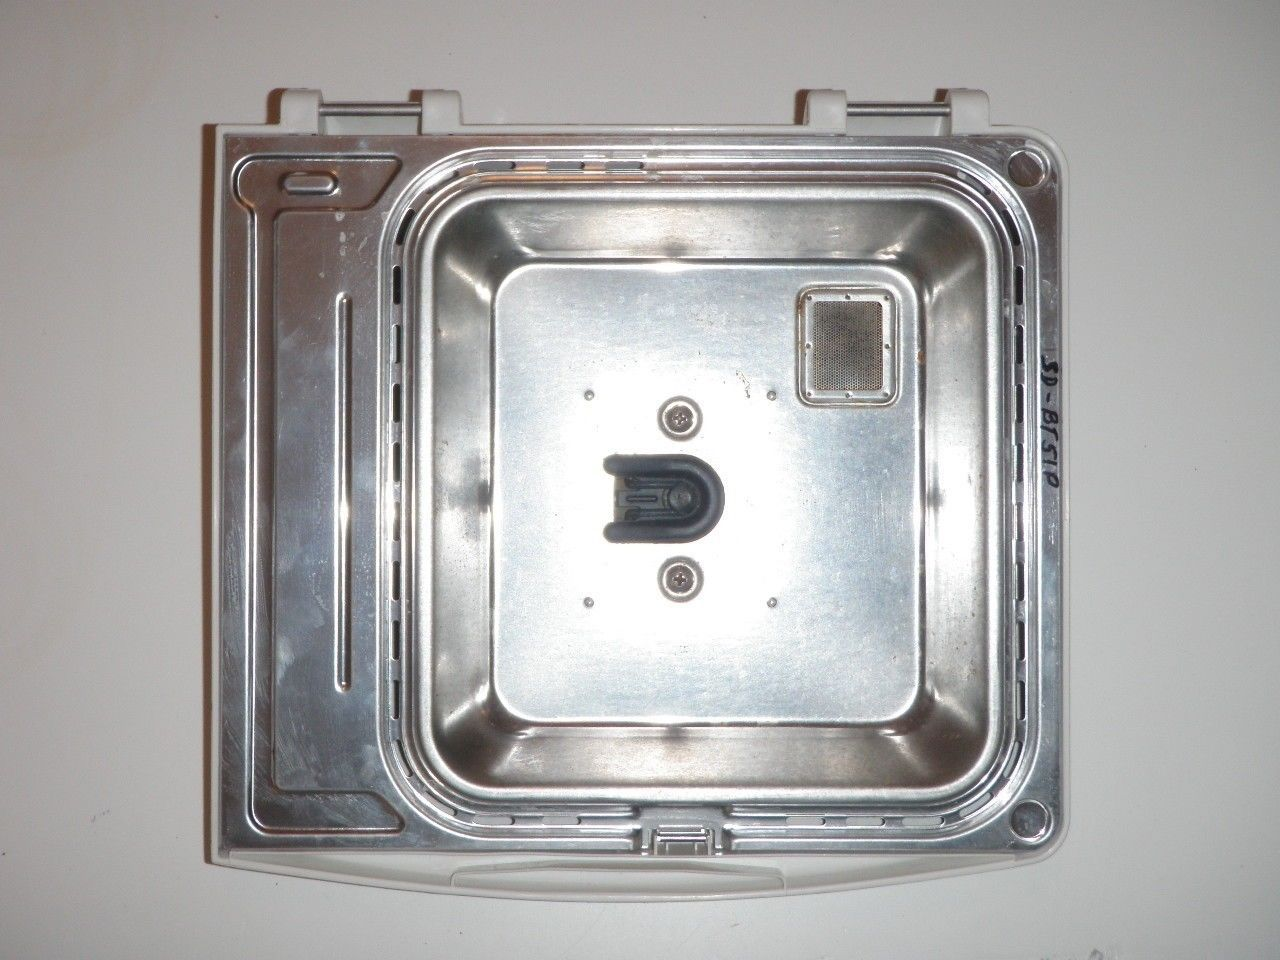 Panasonic National bread makwer machine Lid for Models SD-BT51P Parts SD-BT51N